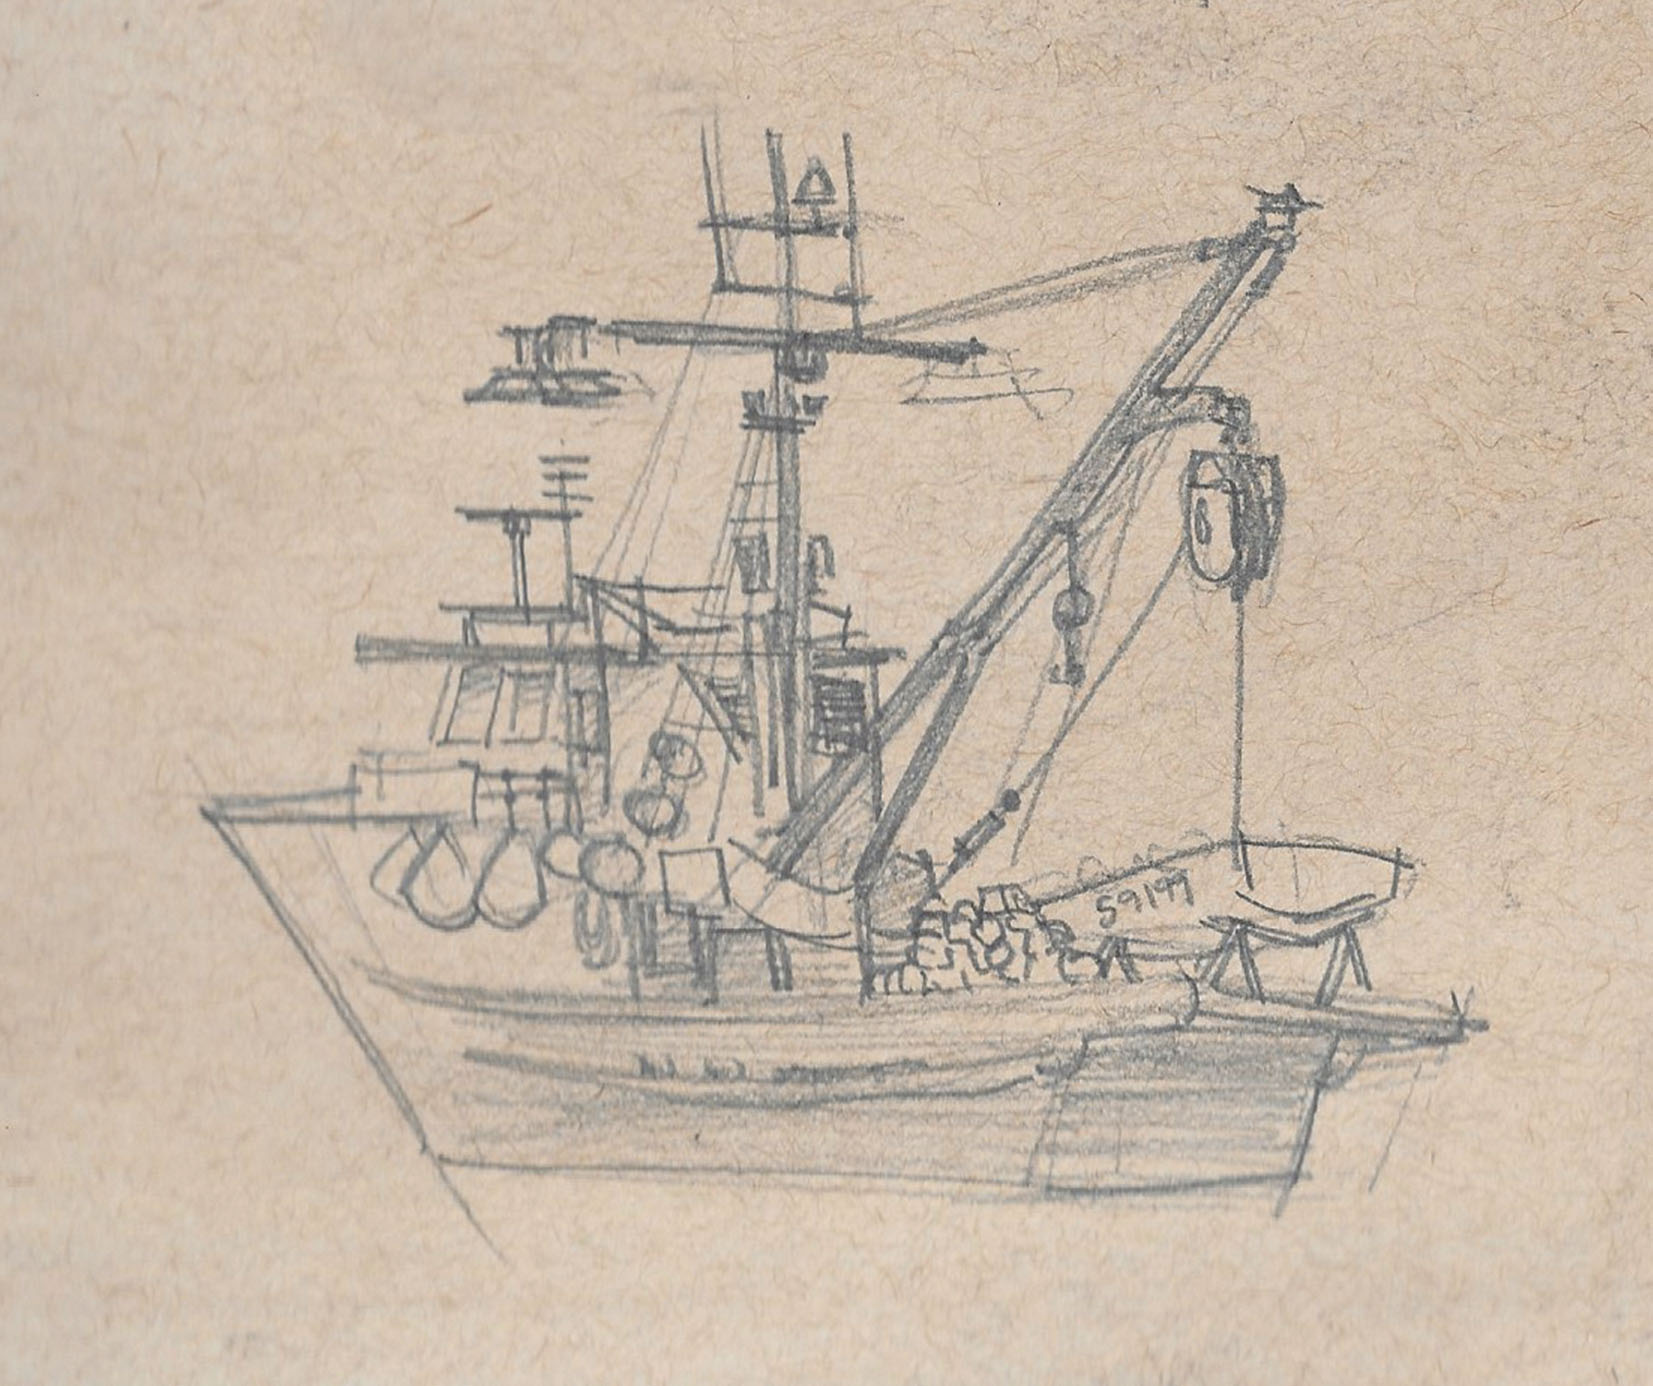 Sketch_Cleanup-SanPedro05-Fishing Boat.jpg